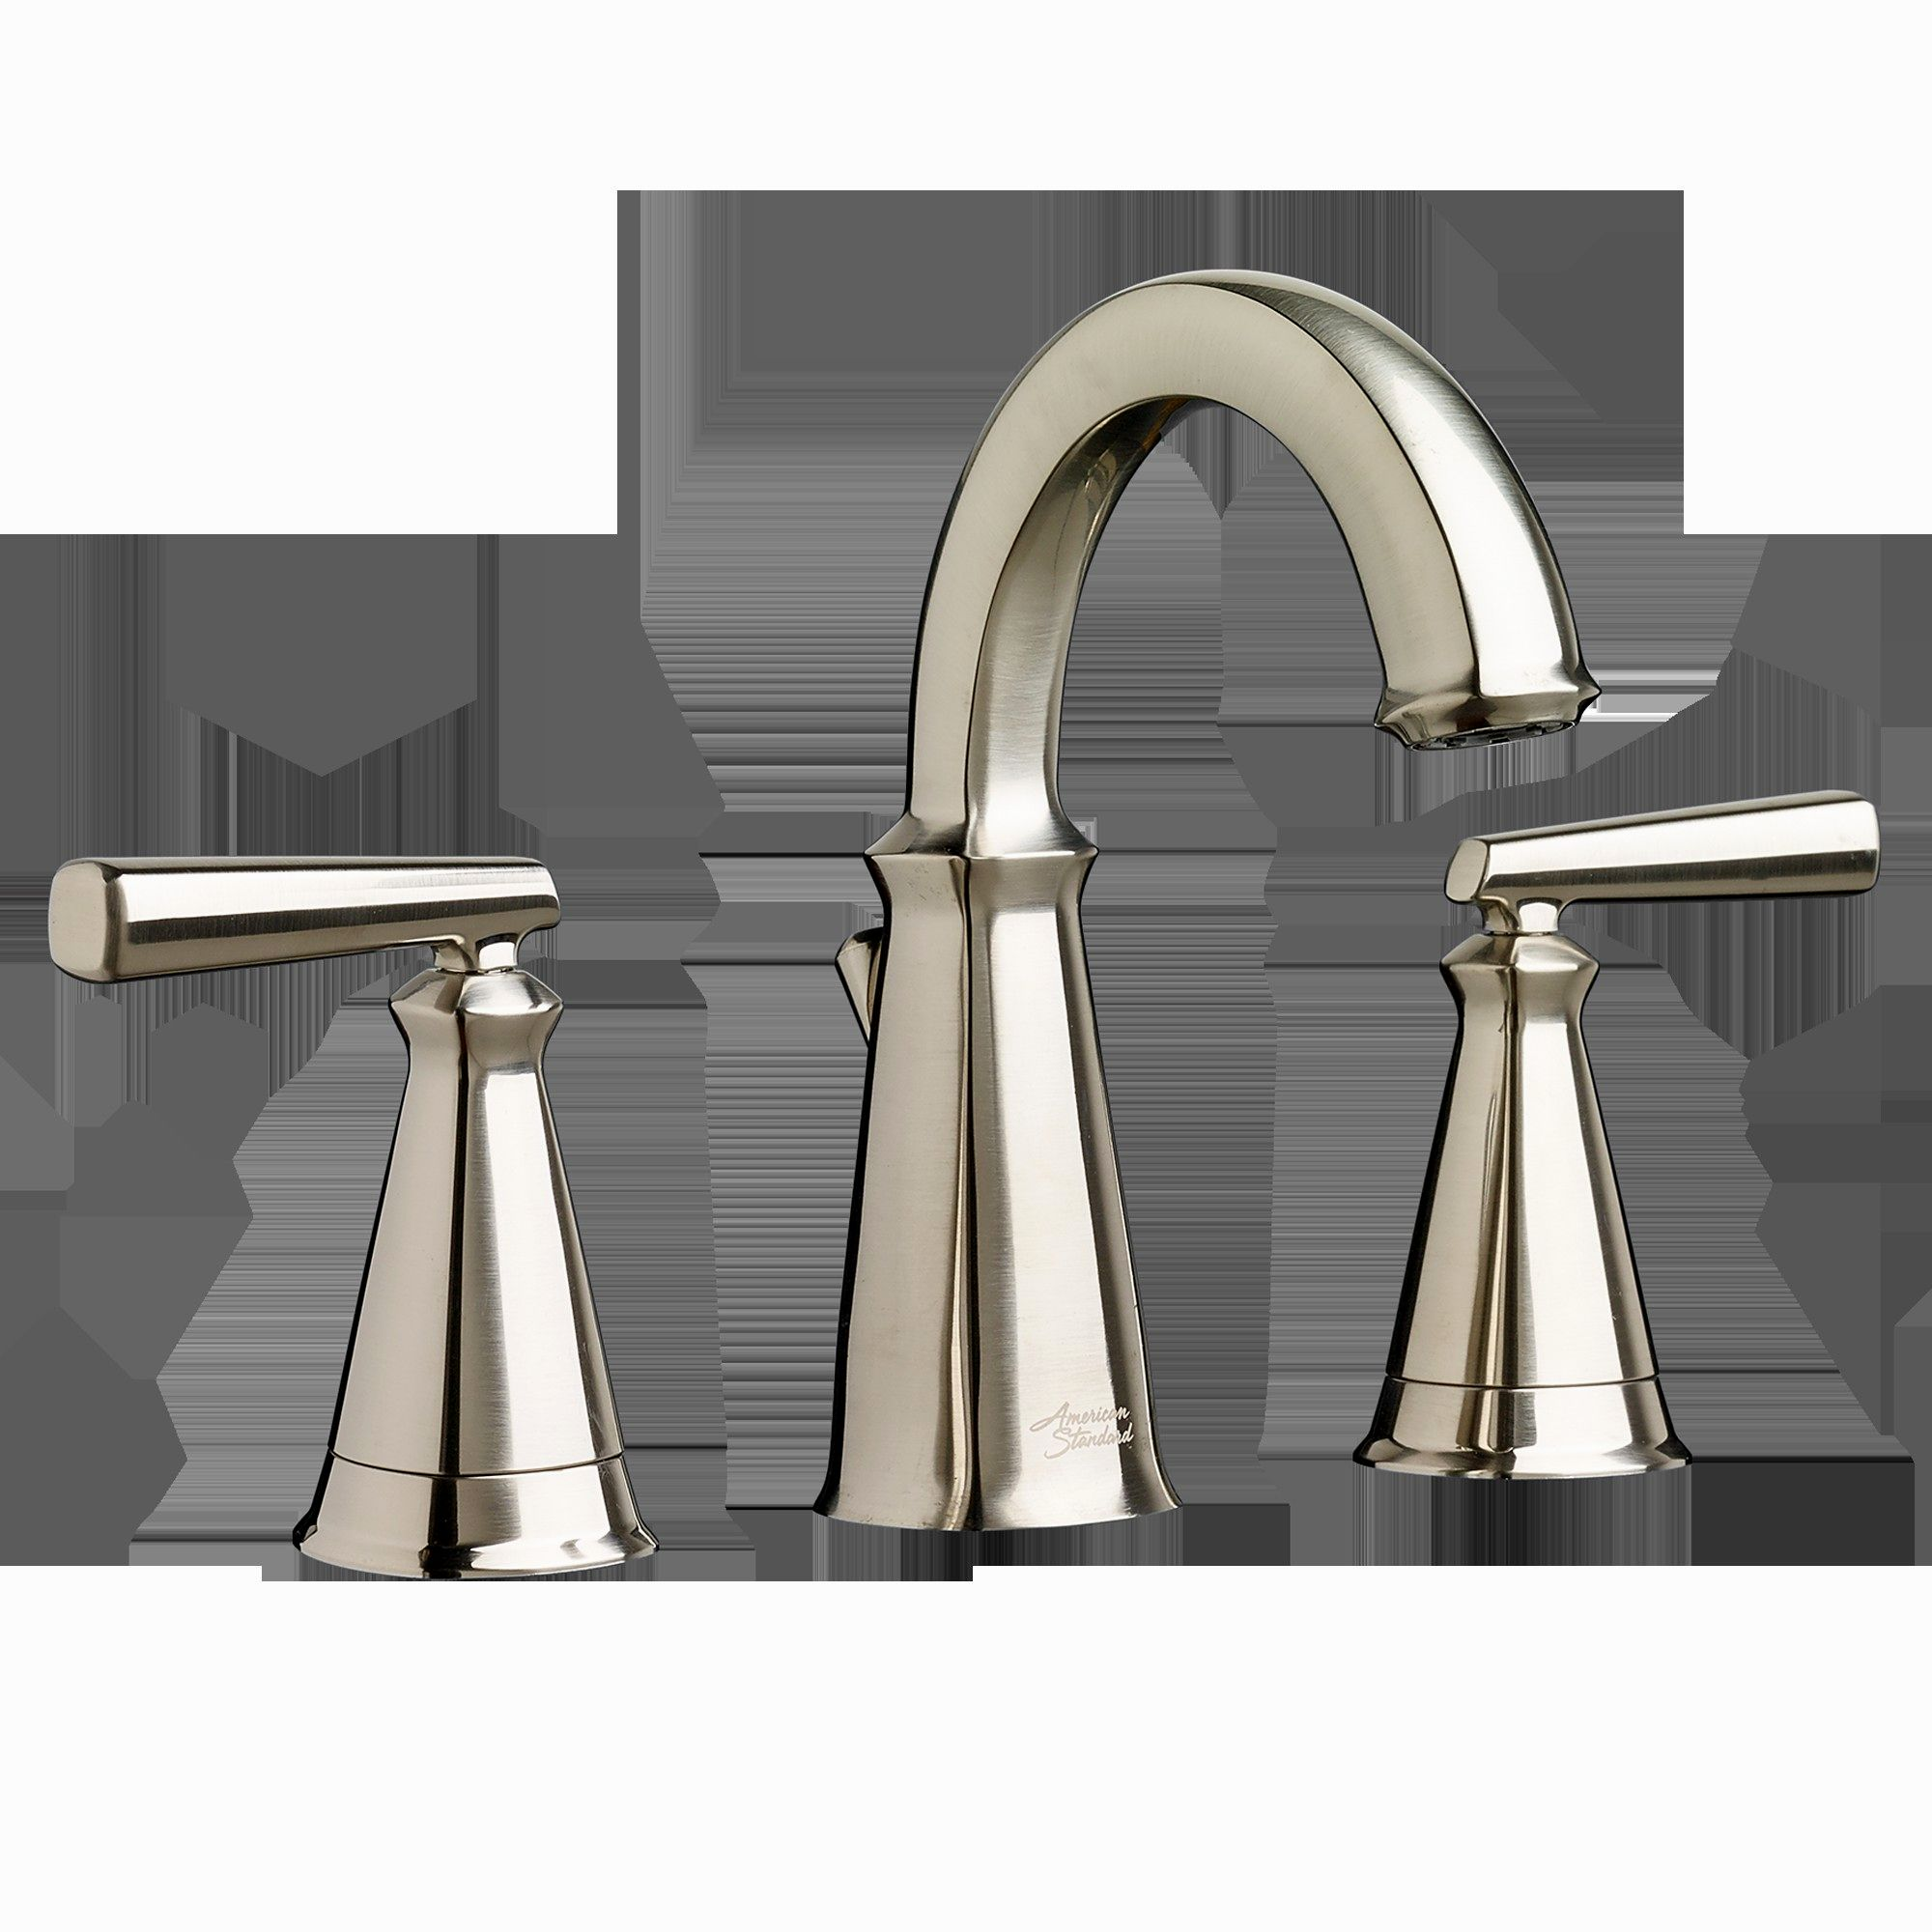 moen tag walden business mediterranean bronze inspirational bathroom of faucets vanity cards faucet new